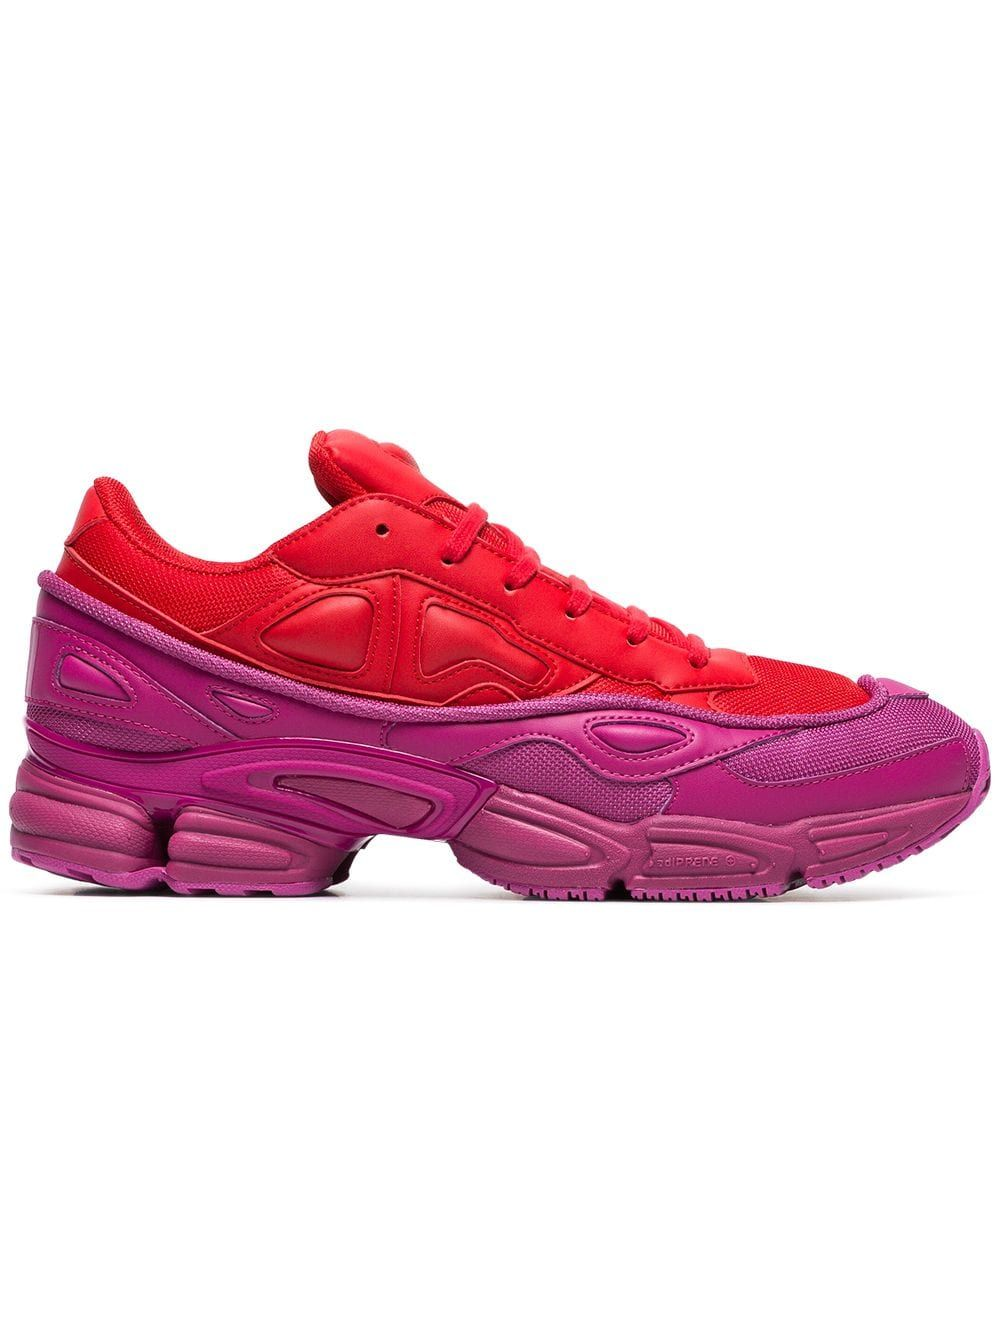 44056294acbe8 ADIDAS BY RAF SIMONS ADIDAS BY RAF SIMONS RED AND PINK OZWEEGO LEATHER  SNEAKERS.  adidasbyrafsimons  shoes